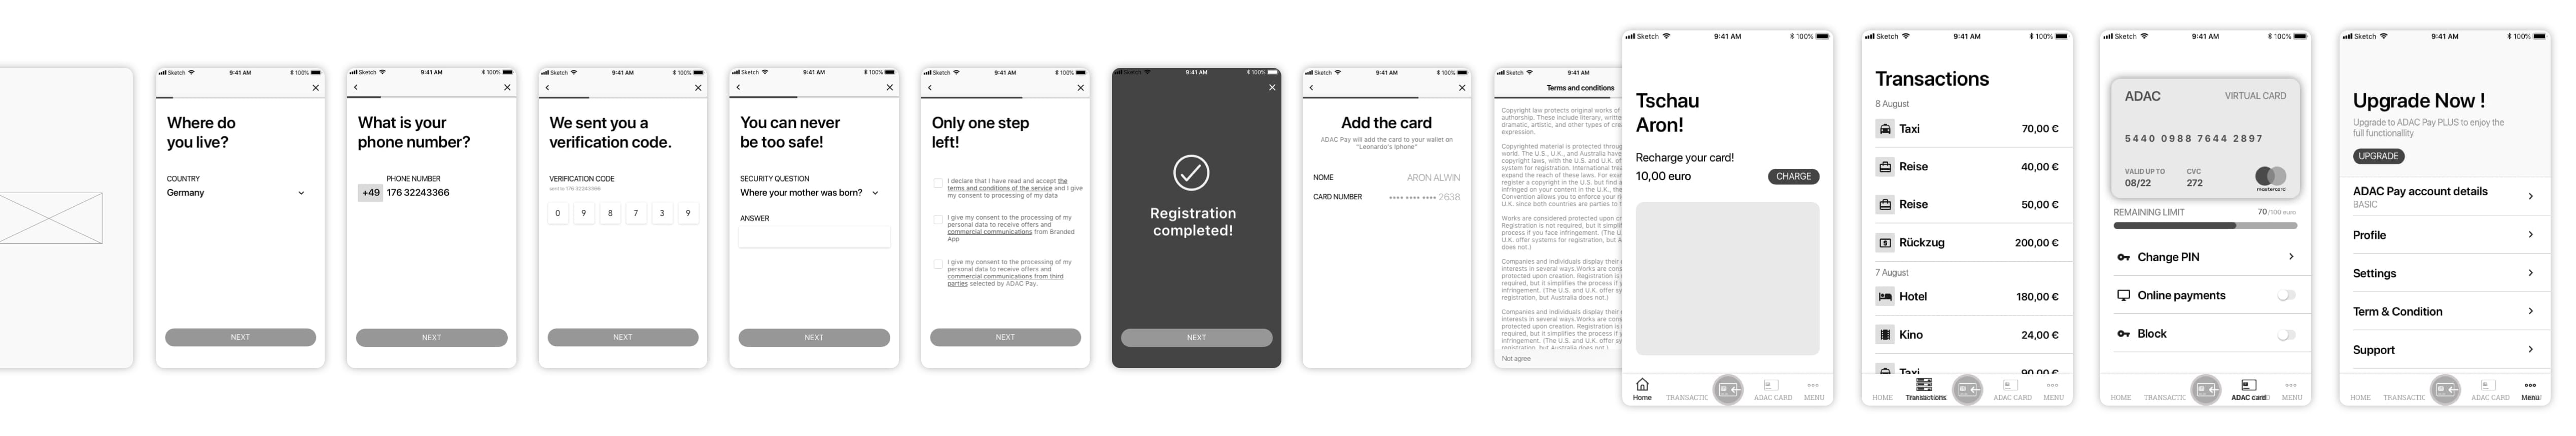 ADAC wireframes-collection